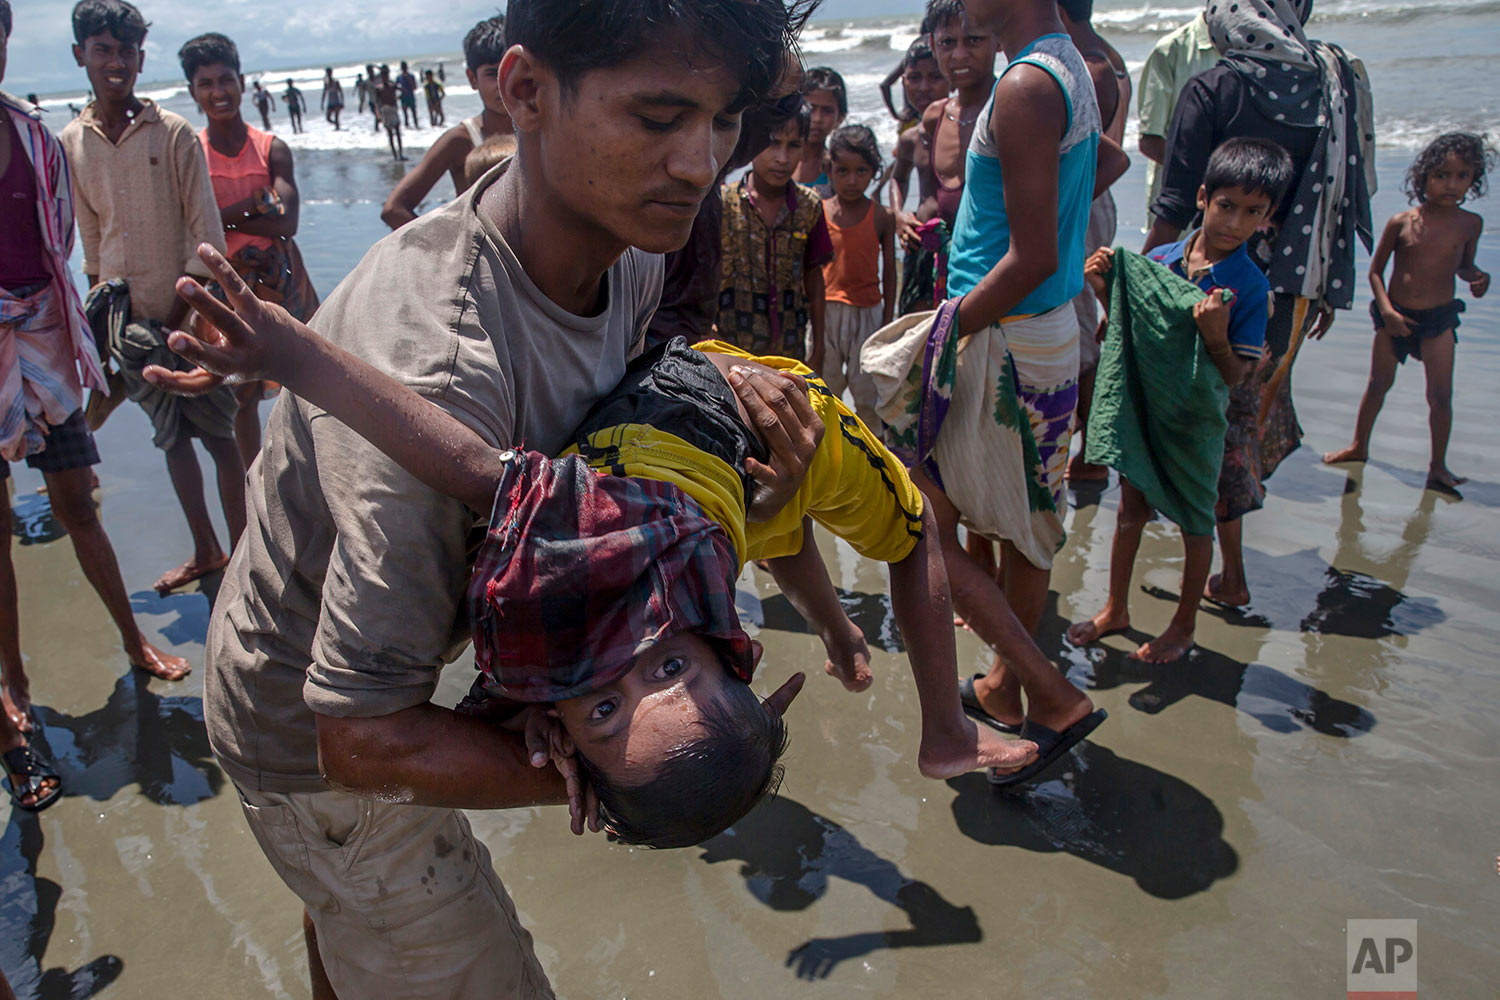 A man shakes a Rohingya Muslim boy while trying to revive him after the boat he was traveling in capsized just before reaching shore at Shah Porir Dwip, Bangladesh, Thursday, Sept. 14, 2017. (AP Photo/Dar Yasin)